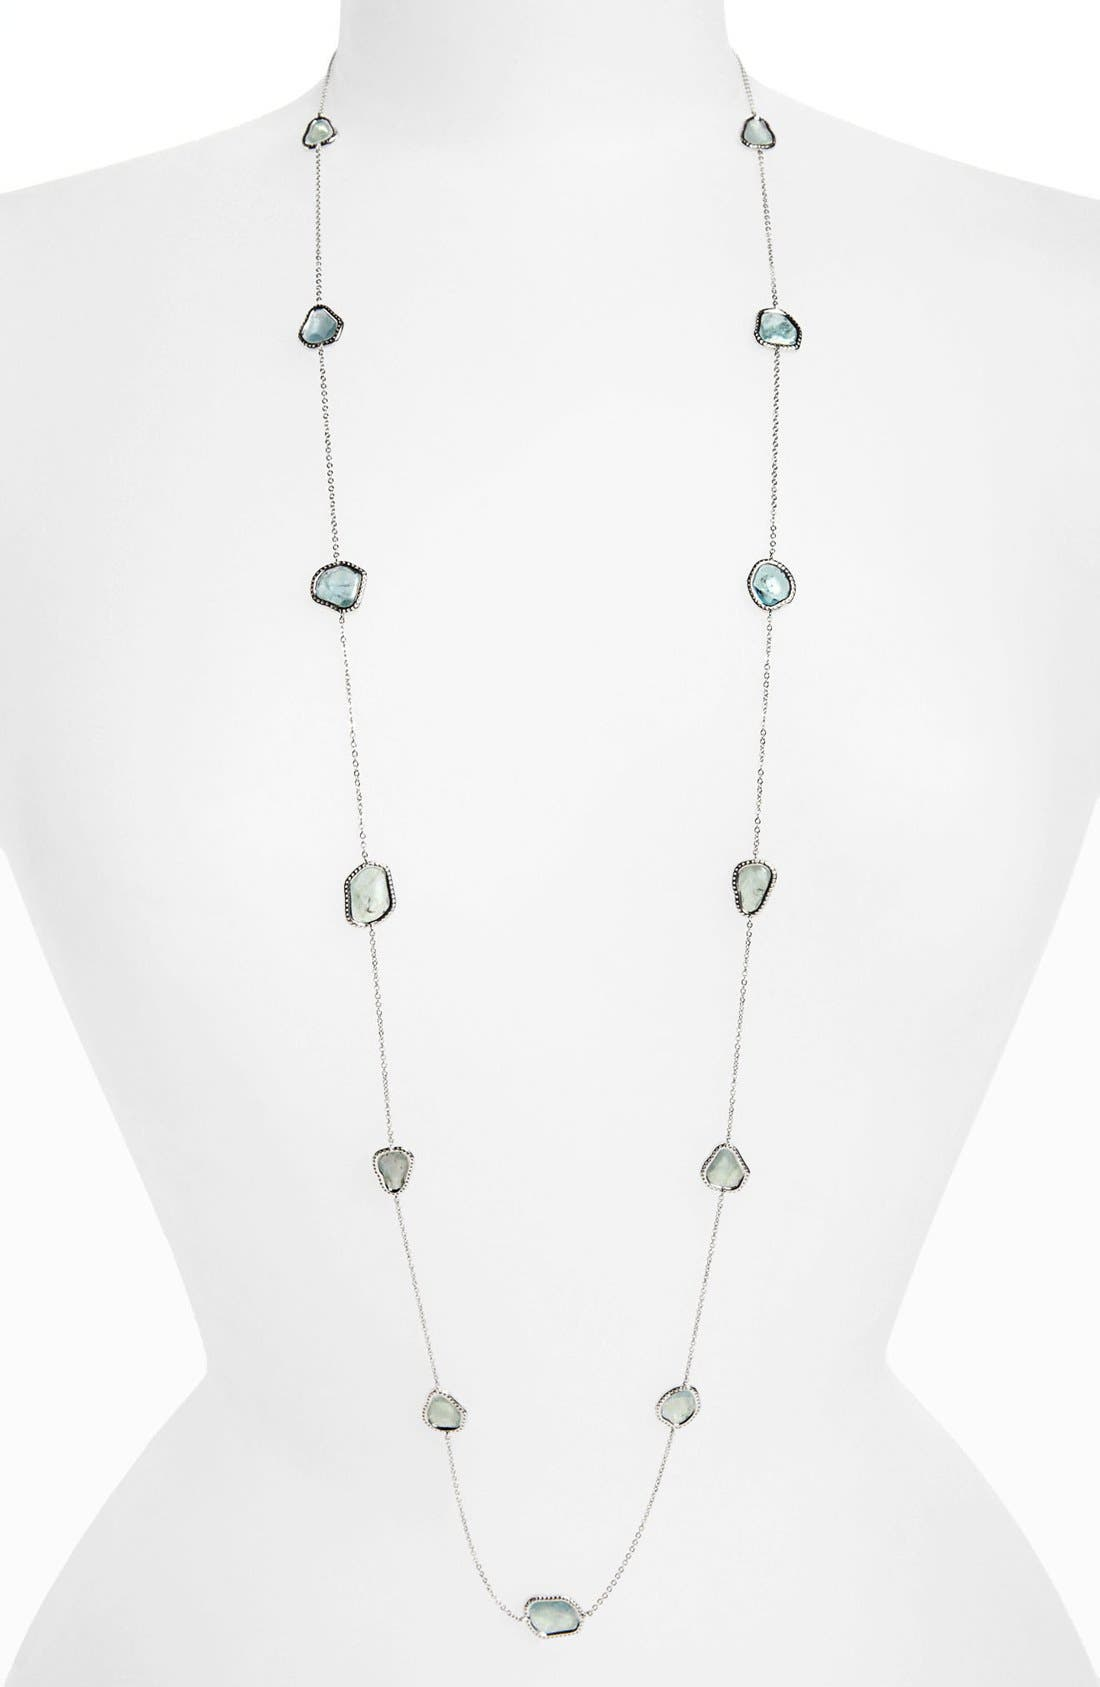 Alternate Image 1 Selected - Nadri Long Station Necklace (Nordstrom Exclusive)